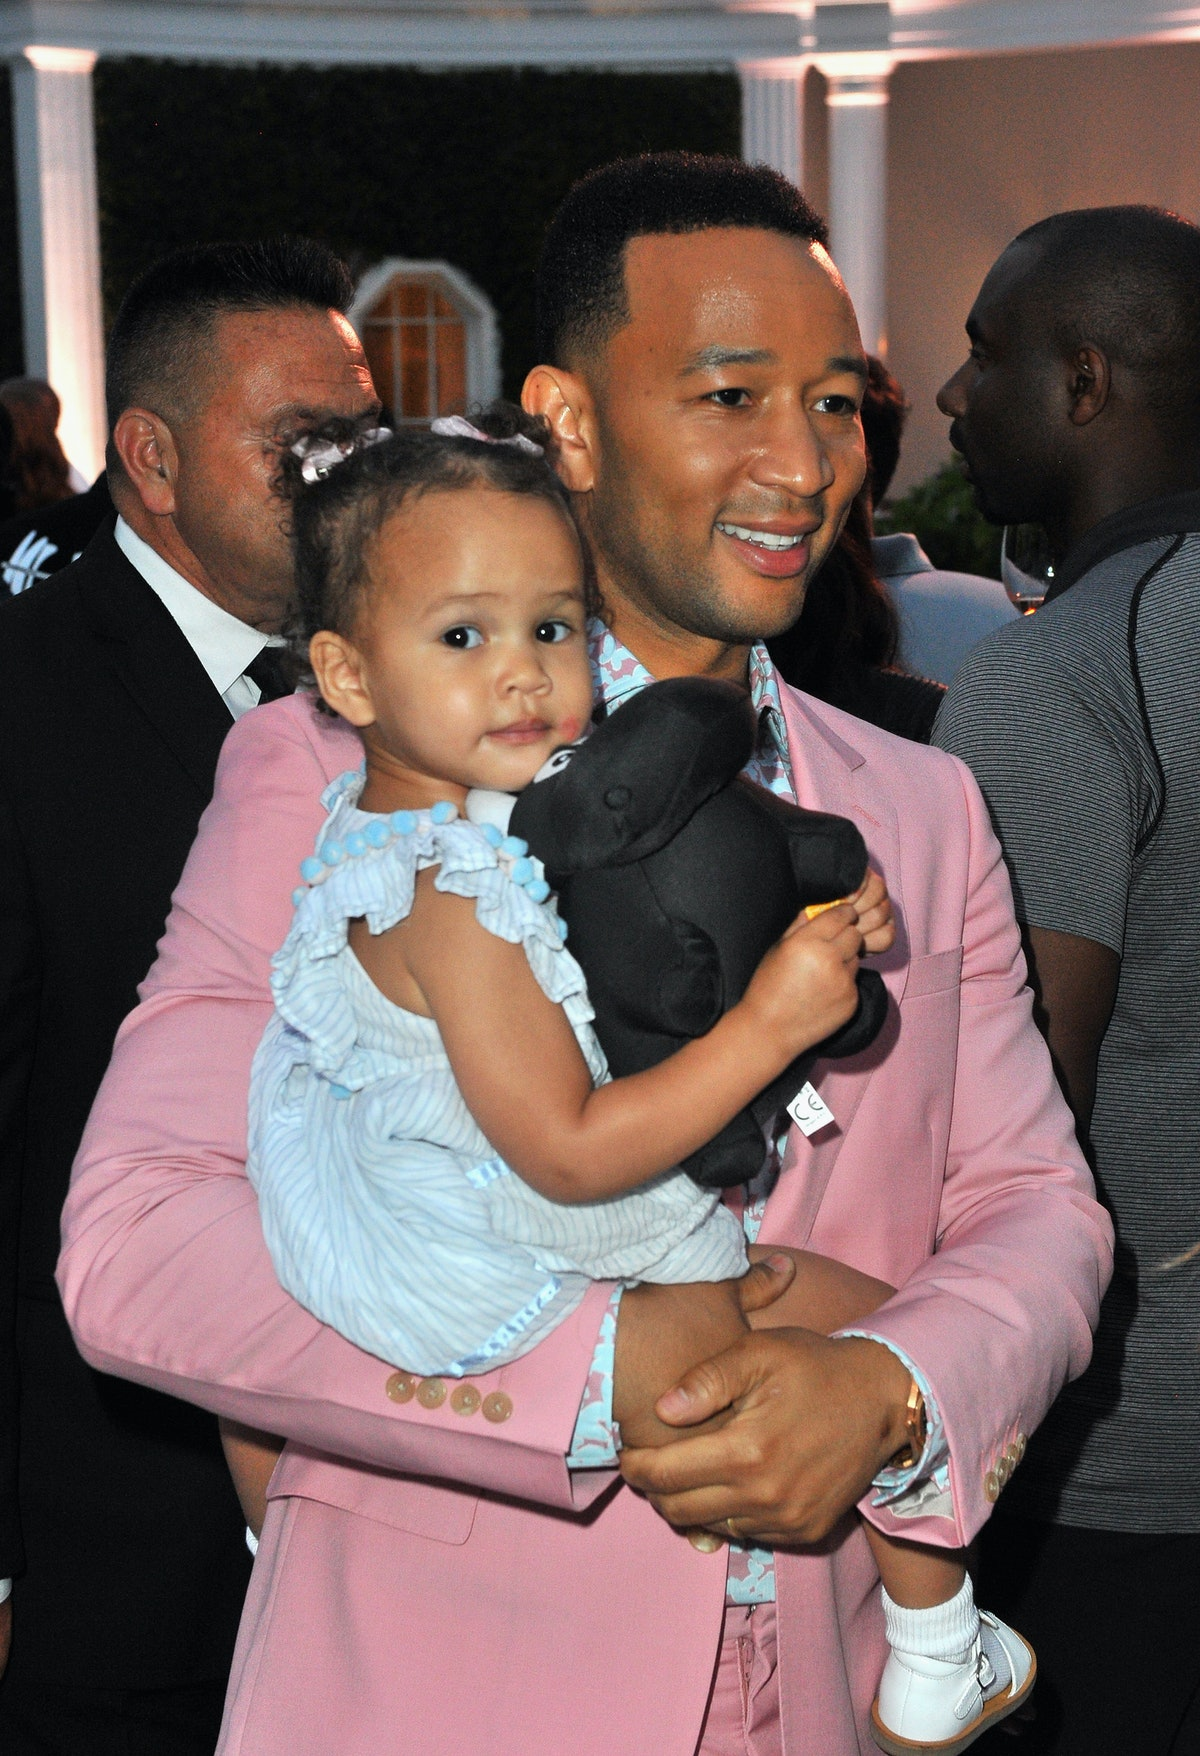 John Legend steps out with his daughter Luna.